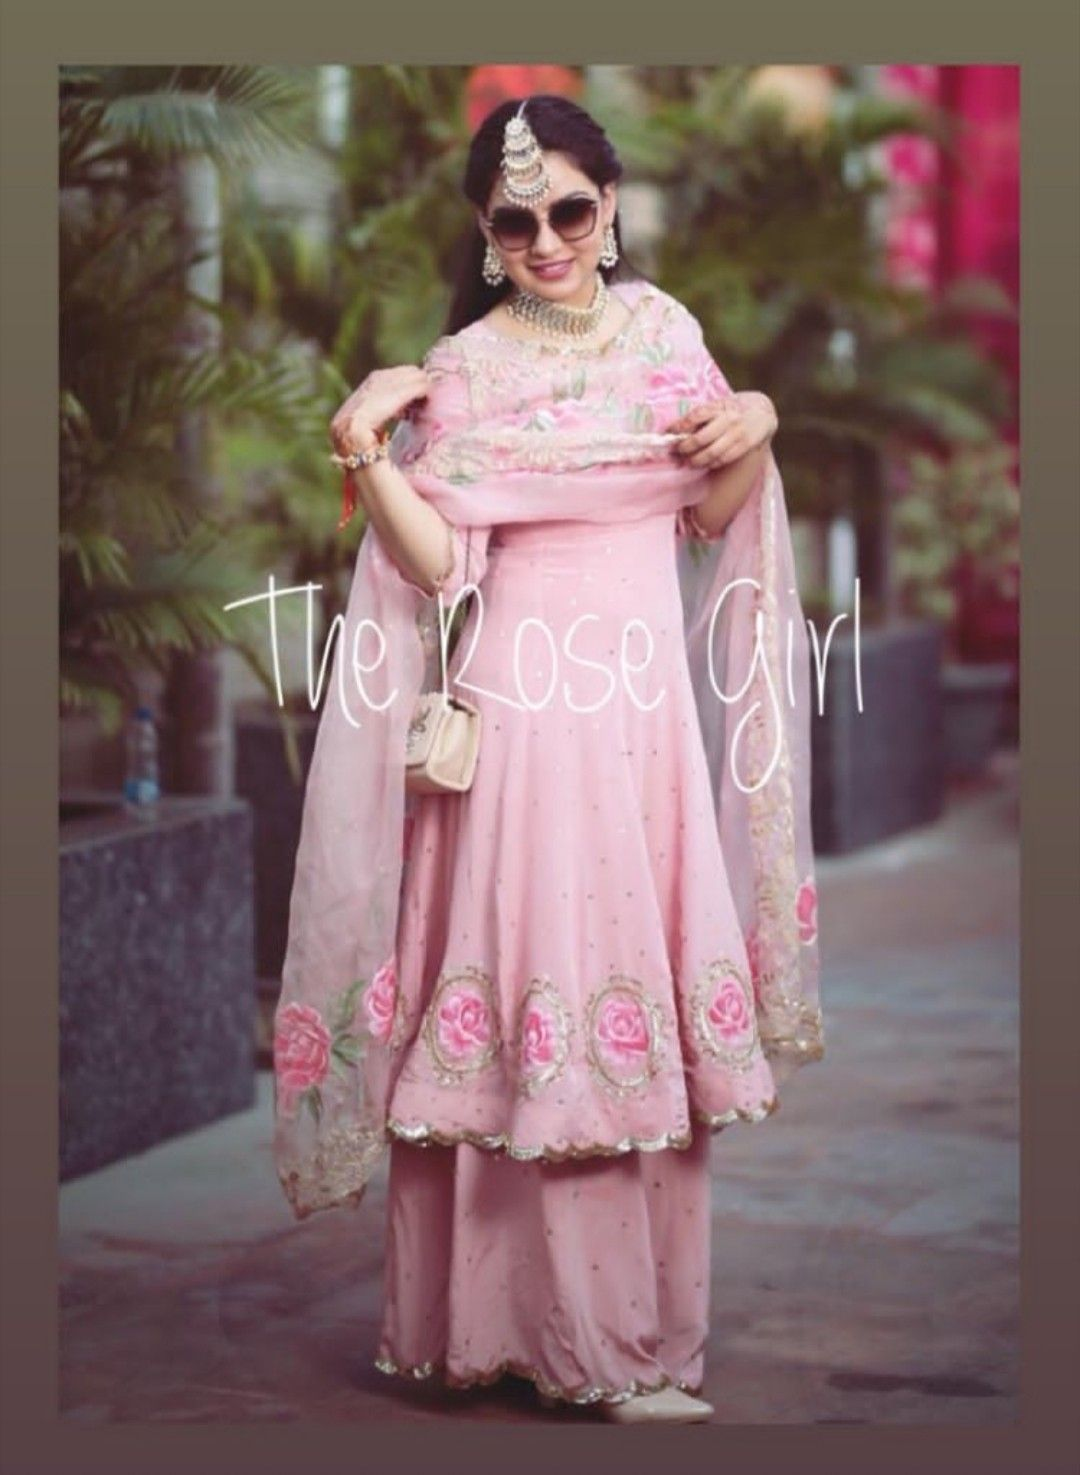 Pin By Sukhdeep Kaur On Lehnga Suits Punjabi Suits Party Wear Indian Designer Outfits Embroidery Suits Design,Simple Palm Tree Tattoo Designs